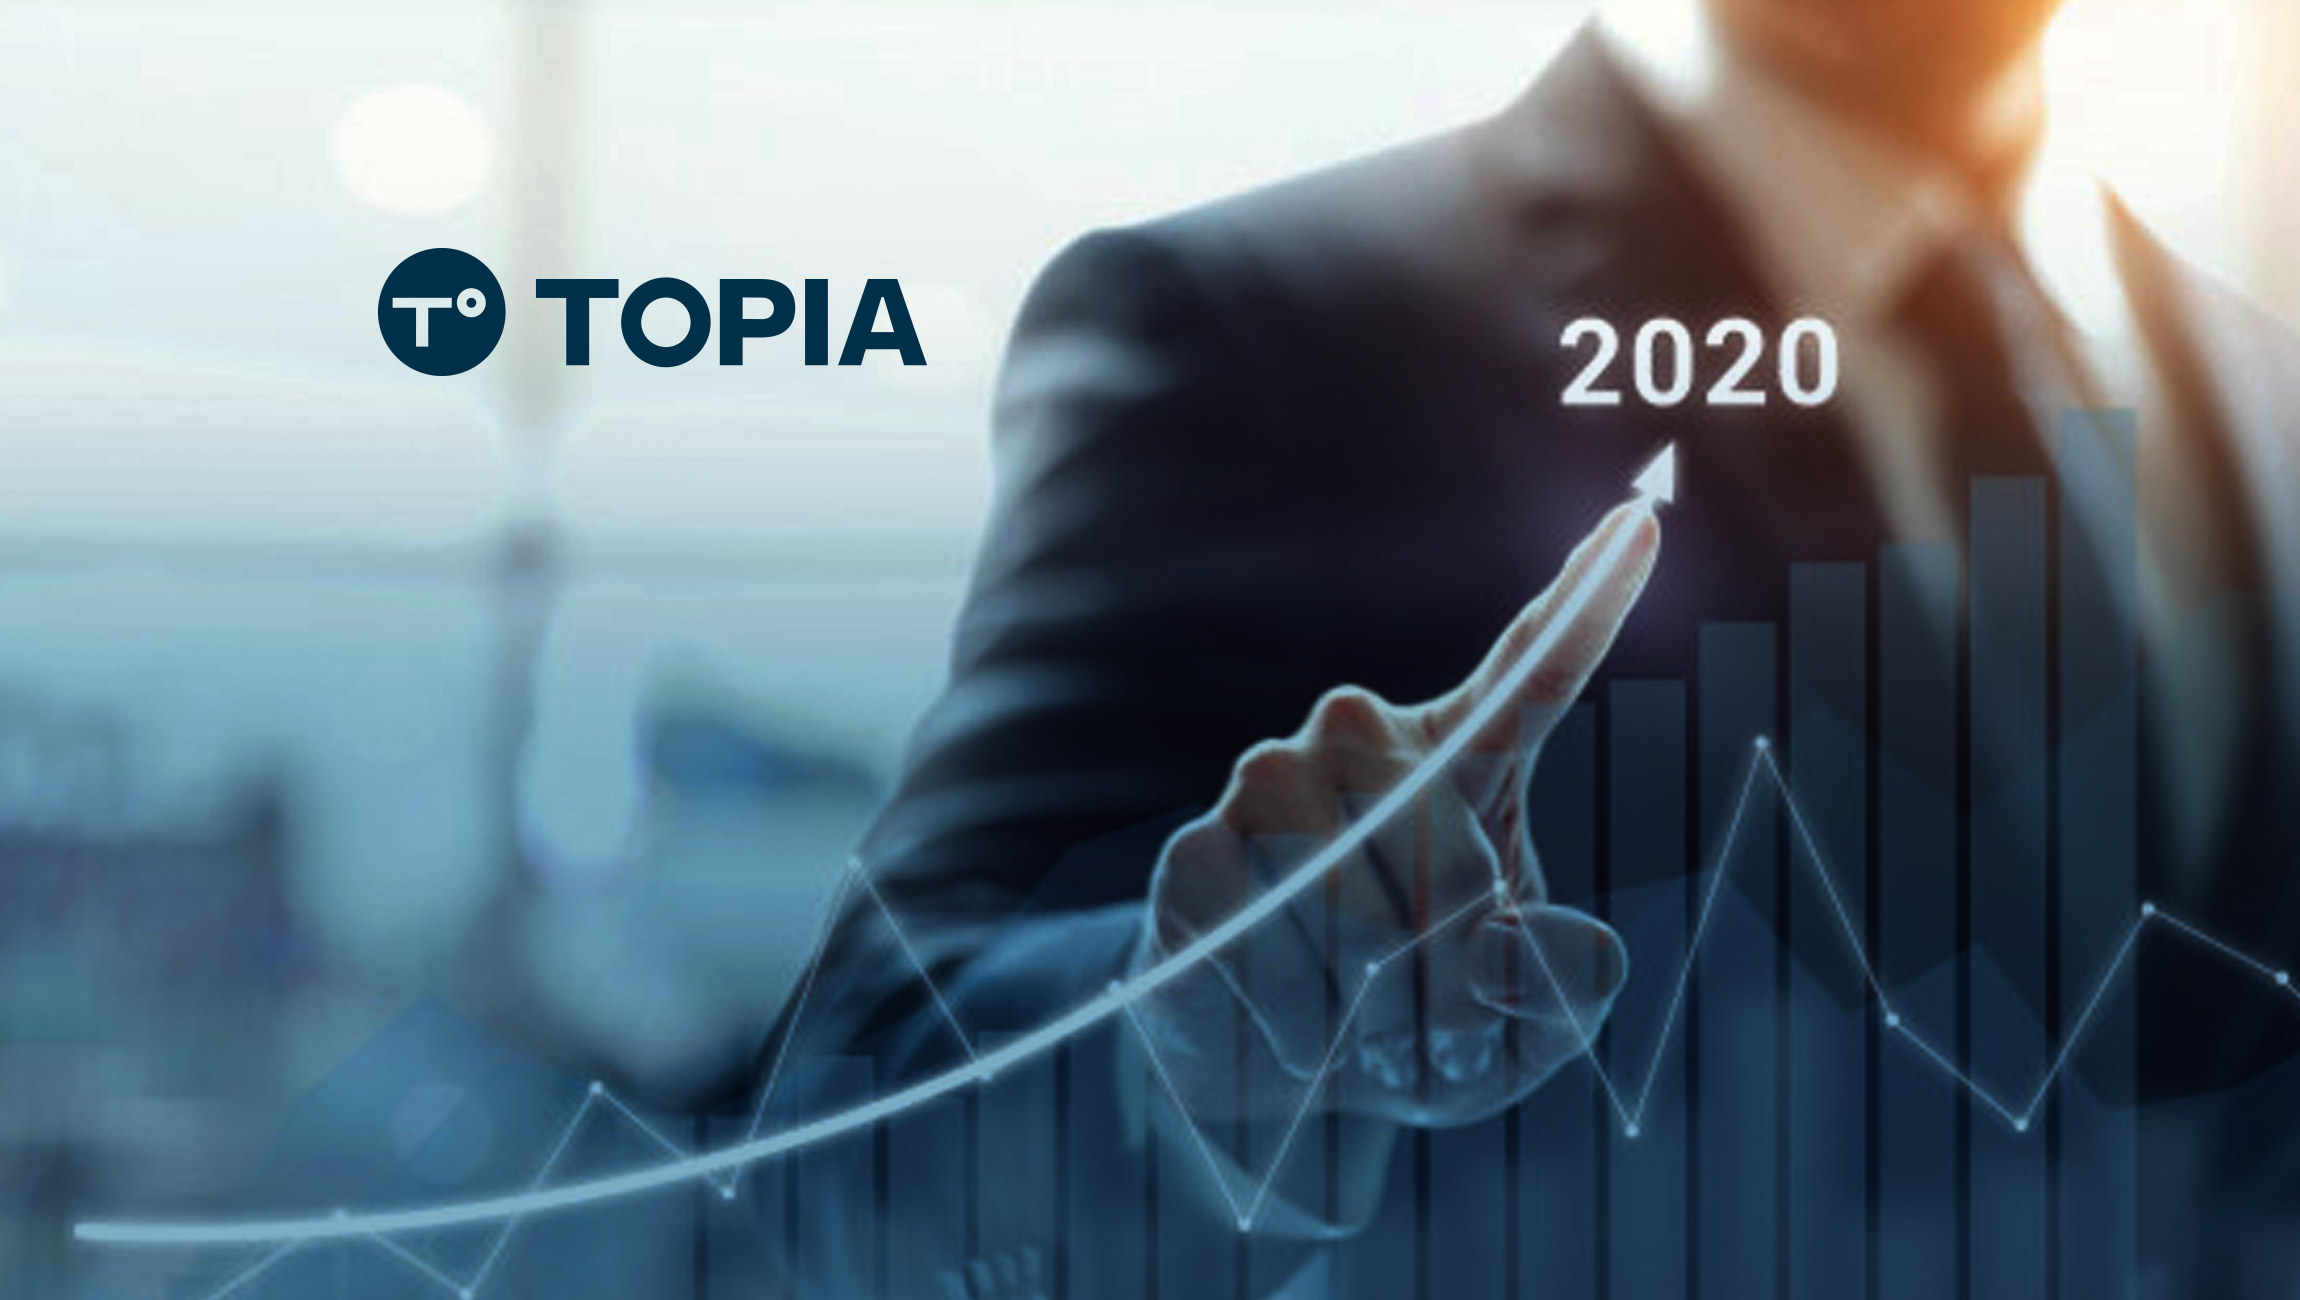 Global Mobility Management Software Provider Topia Gears up for 2020